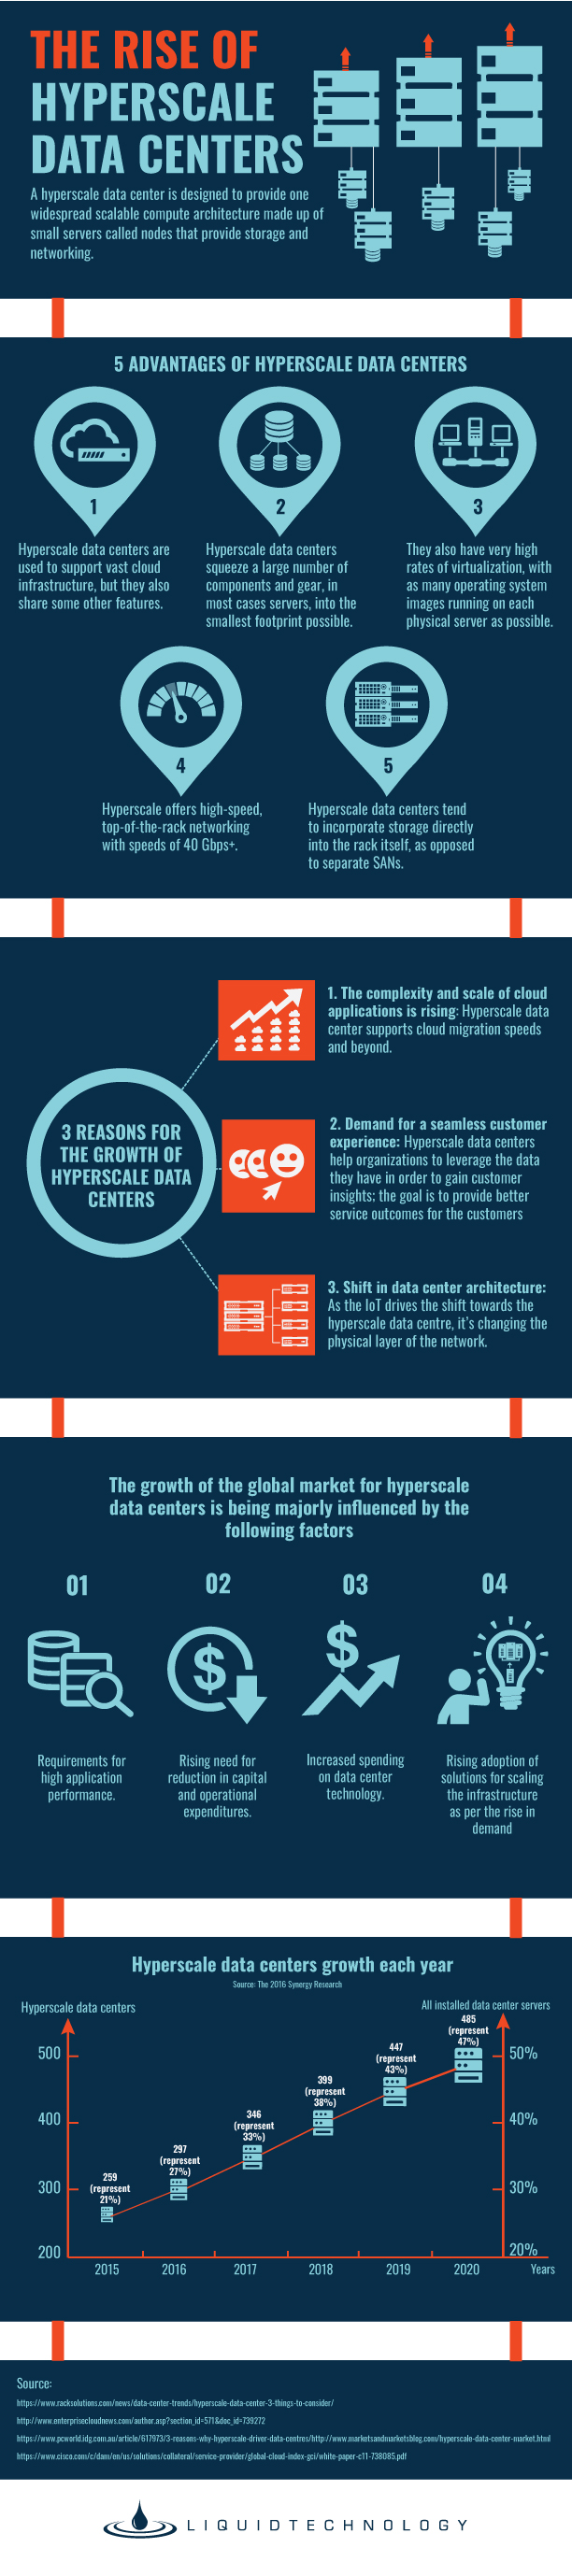 The Rise of Hyperscale Data Centers